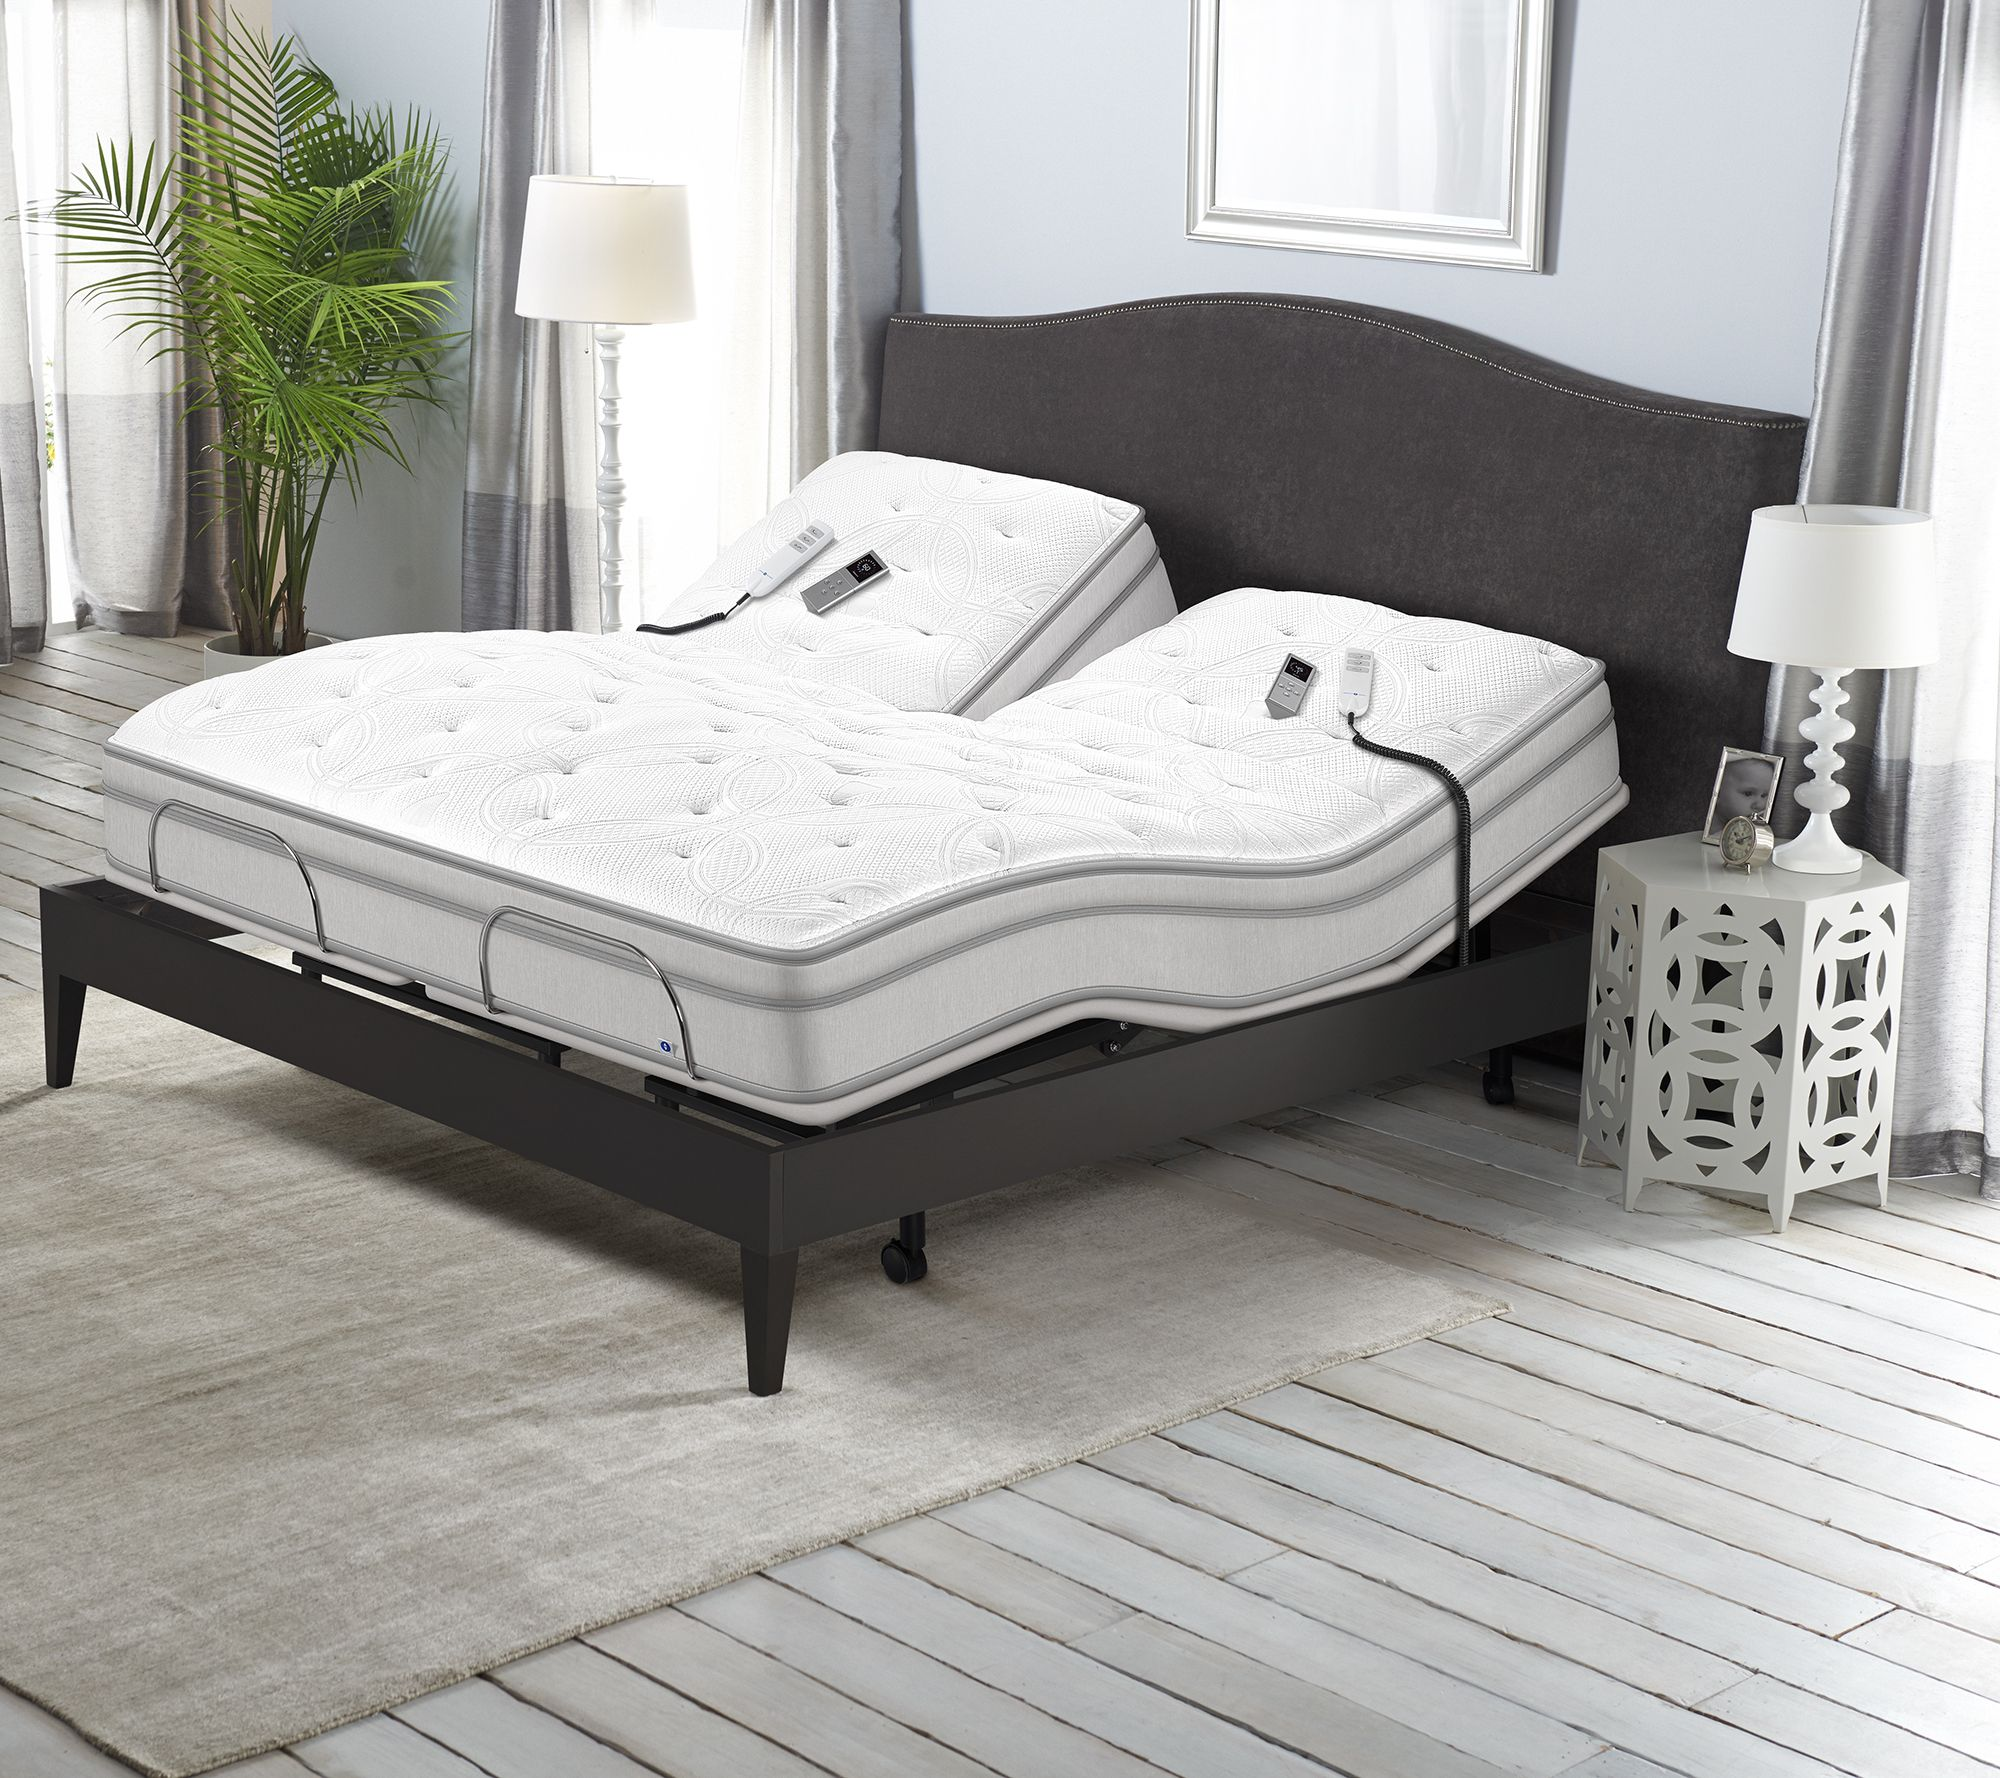 Sleep Number P5 Flex Top King Adjustable Base Mattress Set Qvc Com